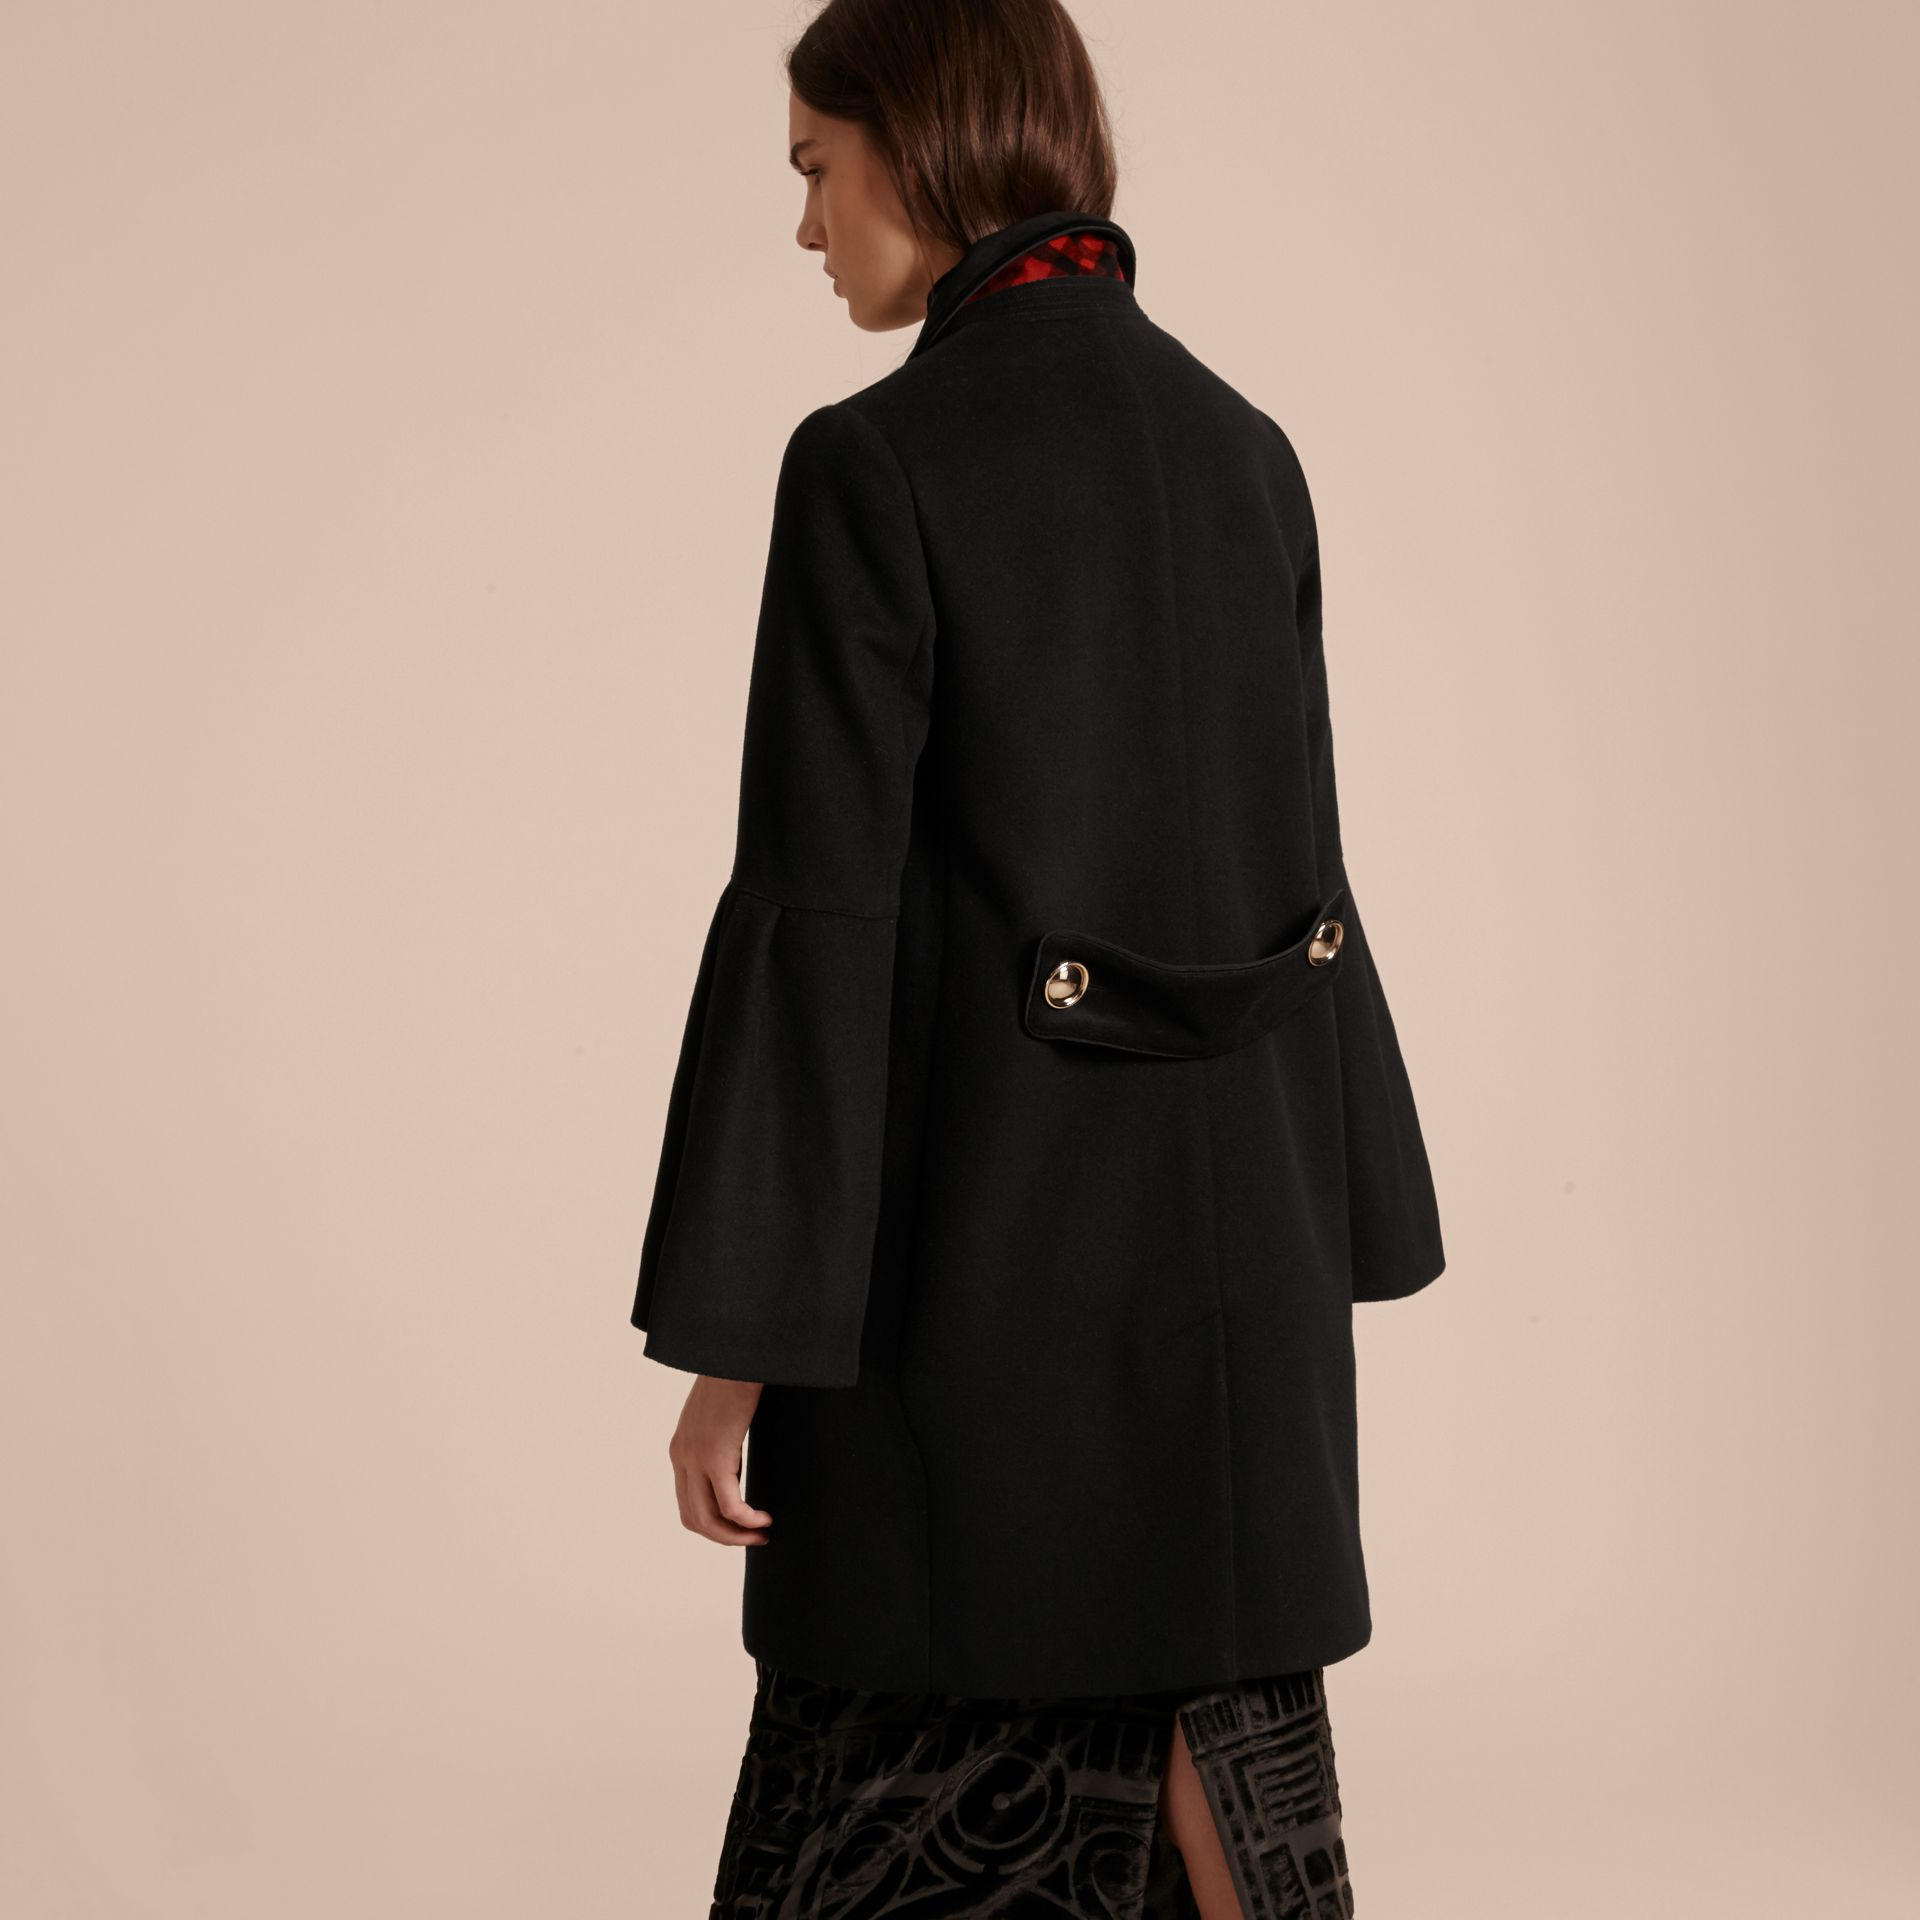 Black Tailored Wool Cashmere Coat with Bell Sleeves Black - gallery image 3